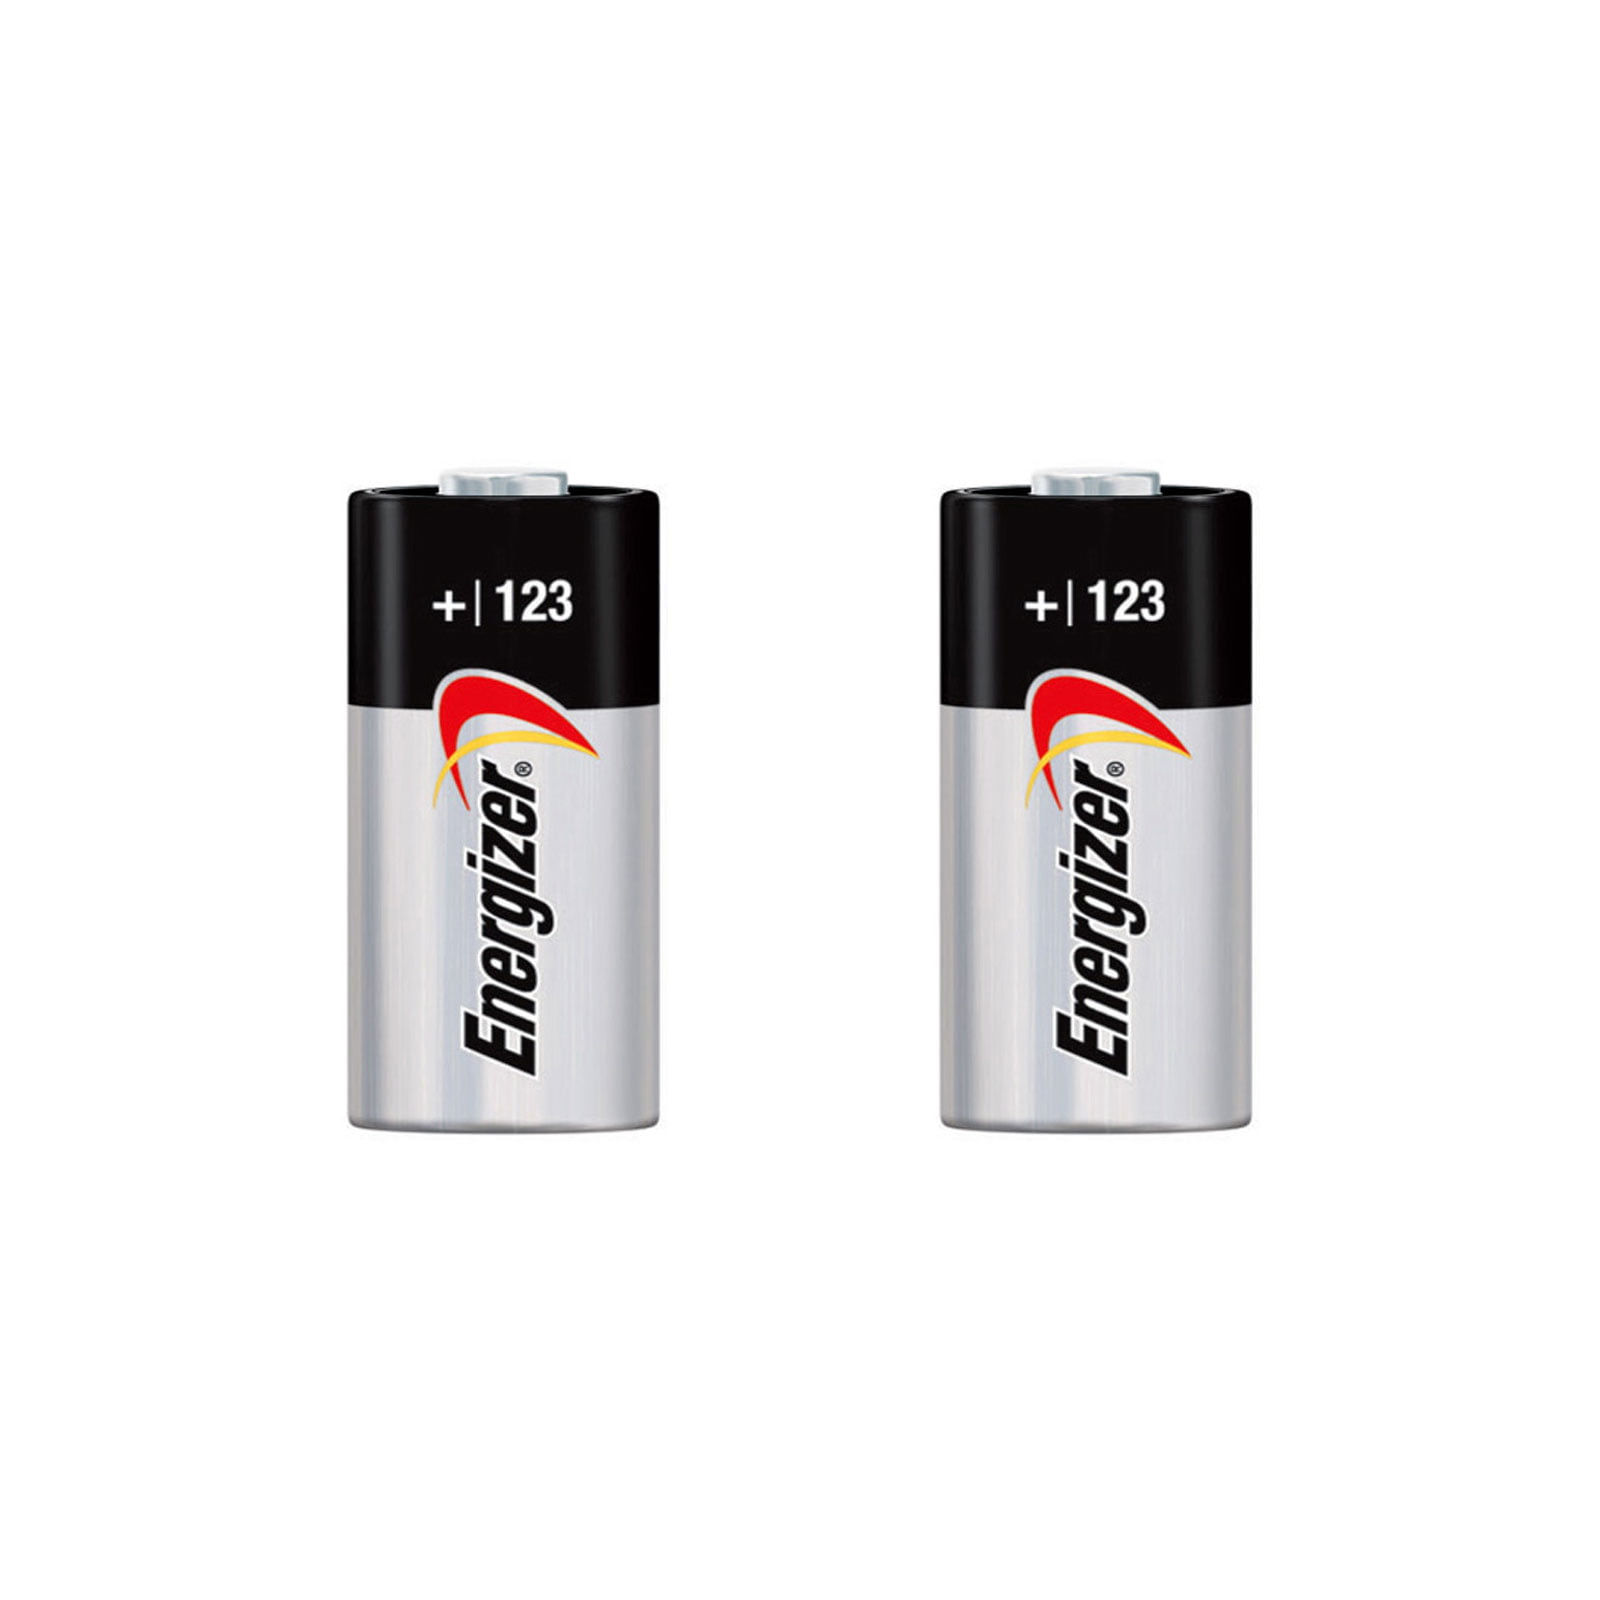 2x Energizer CR123A 123A DL123A Photo Lithium Battery 3V 1500mAh FAST USA SHIP by Energizer